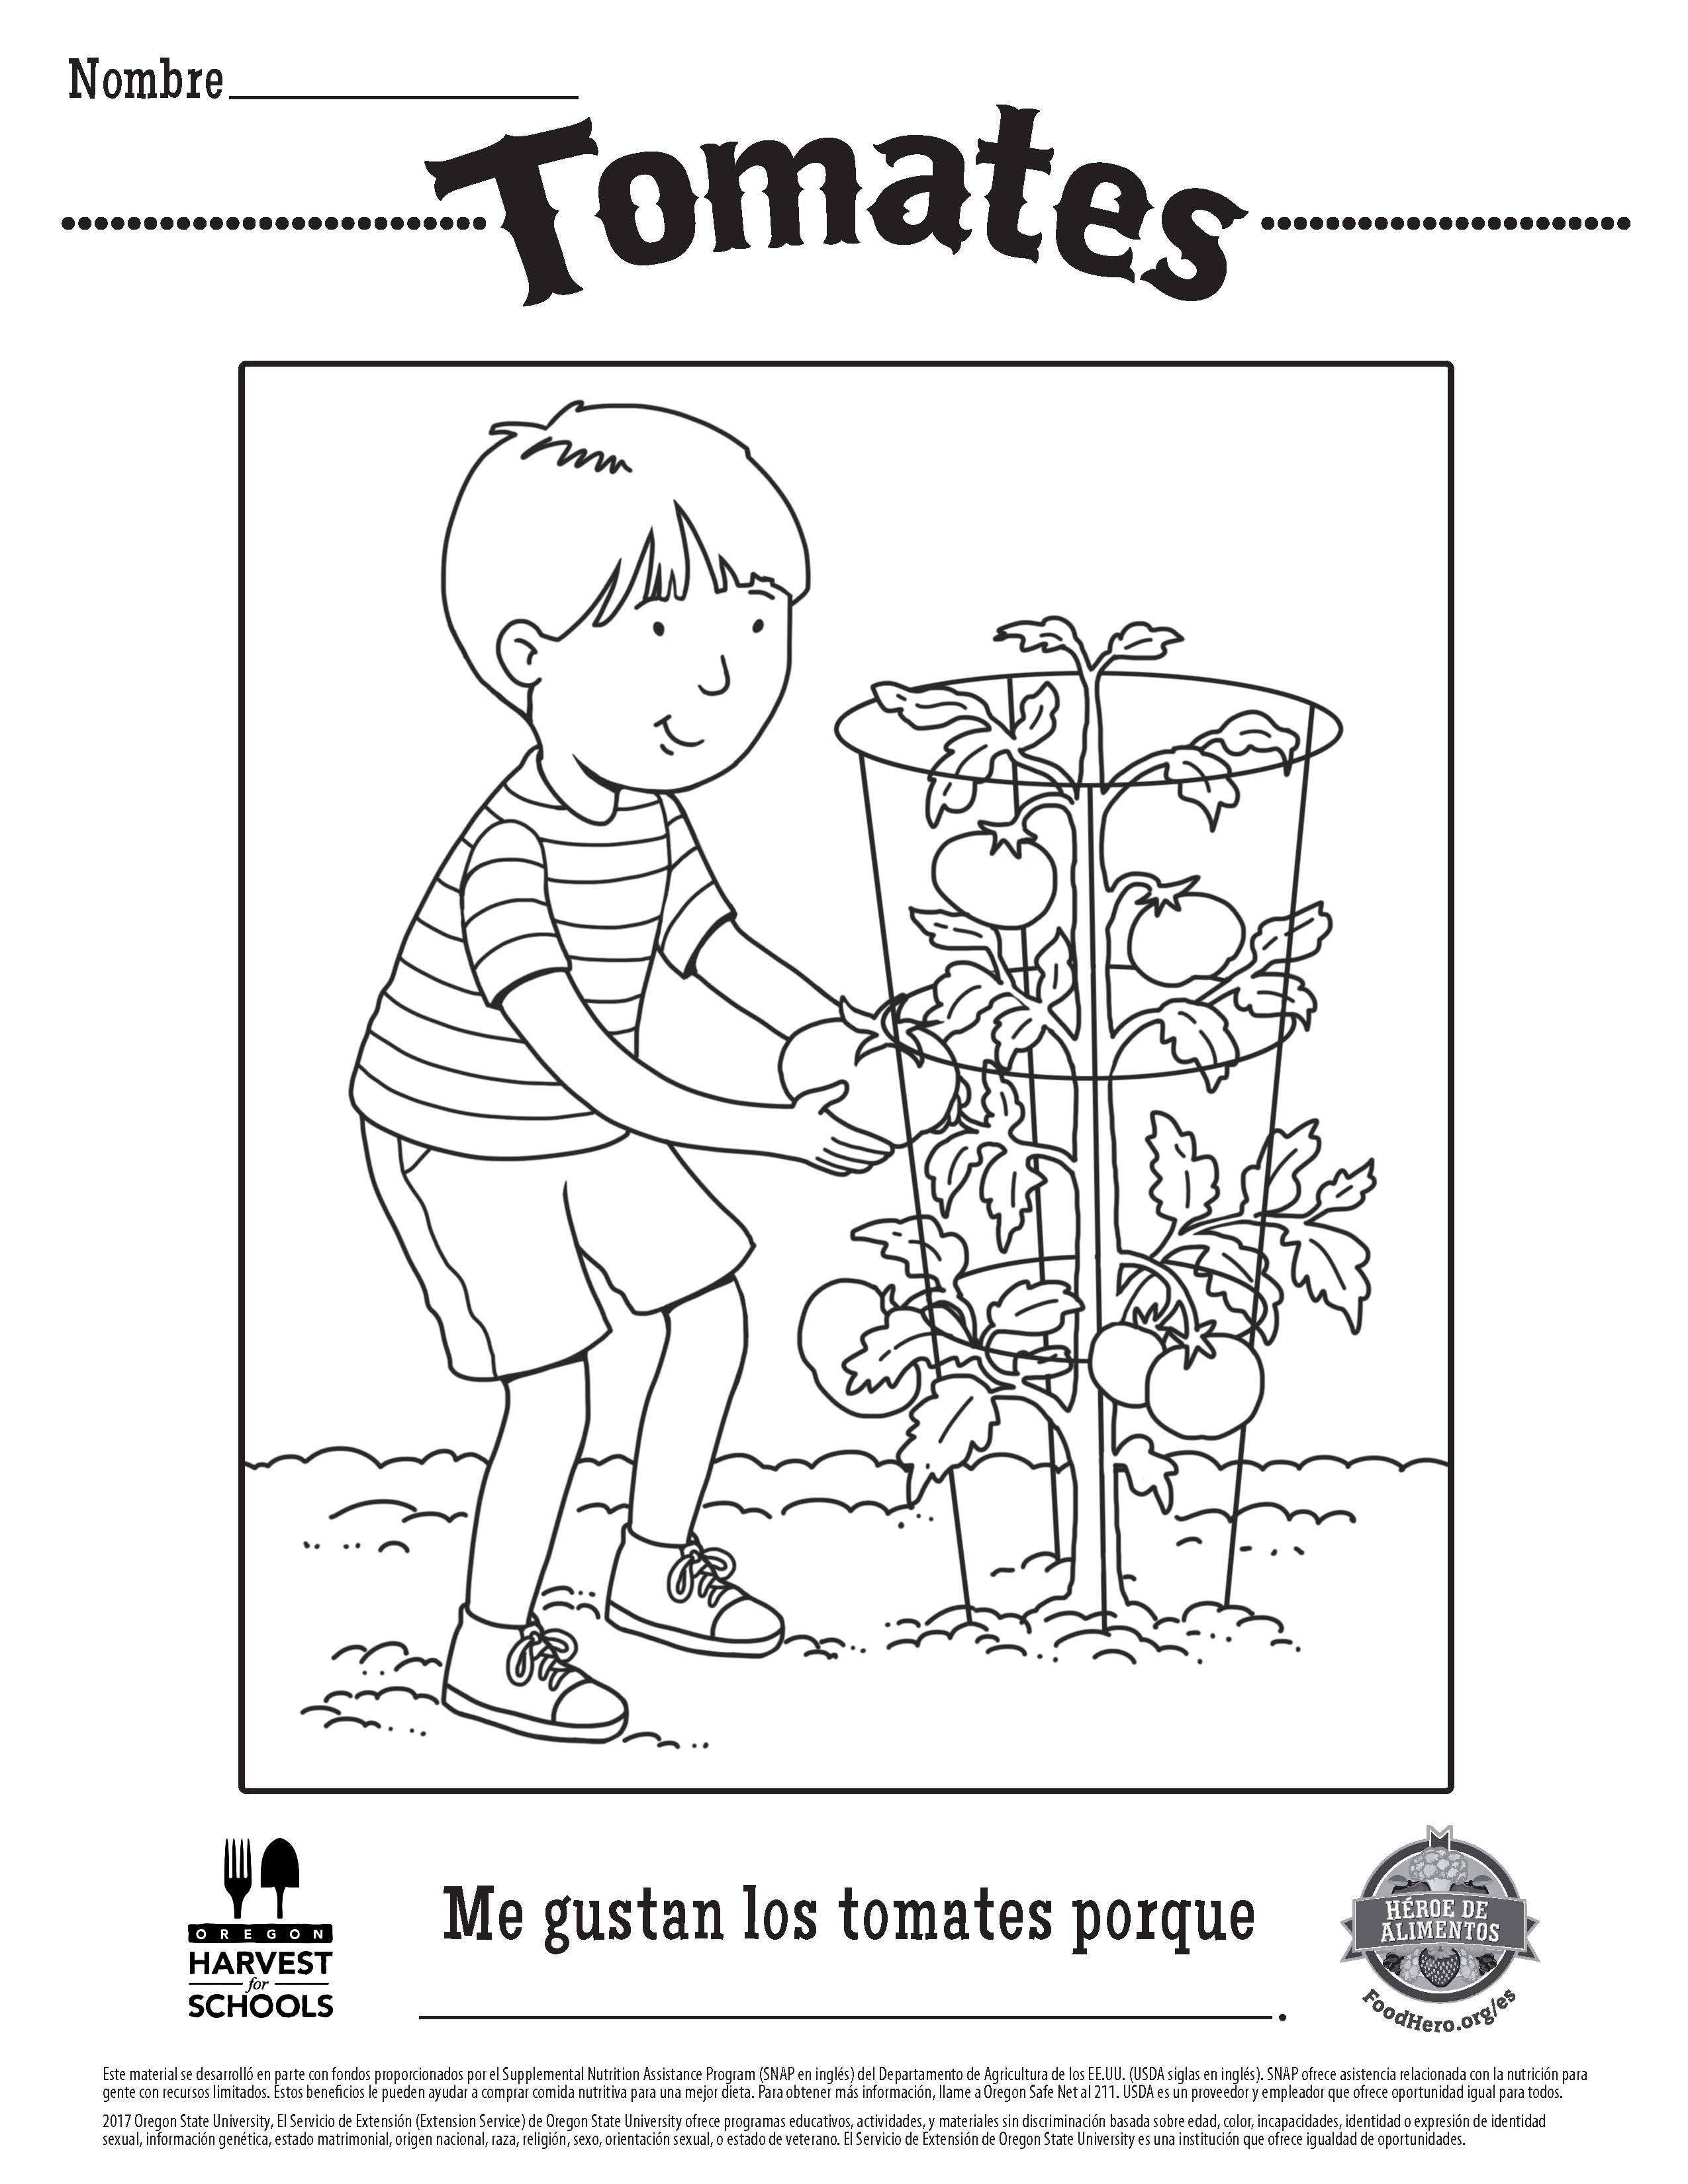 Tomatoes In Spanish Free Printable Children S Coloring